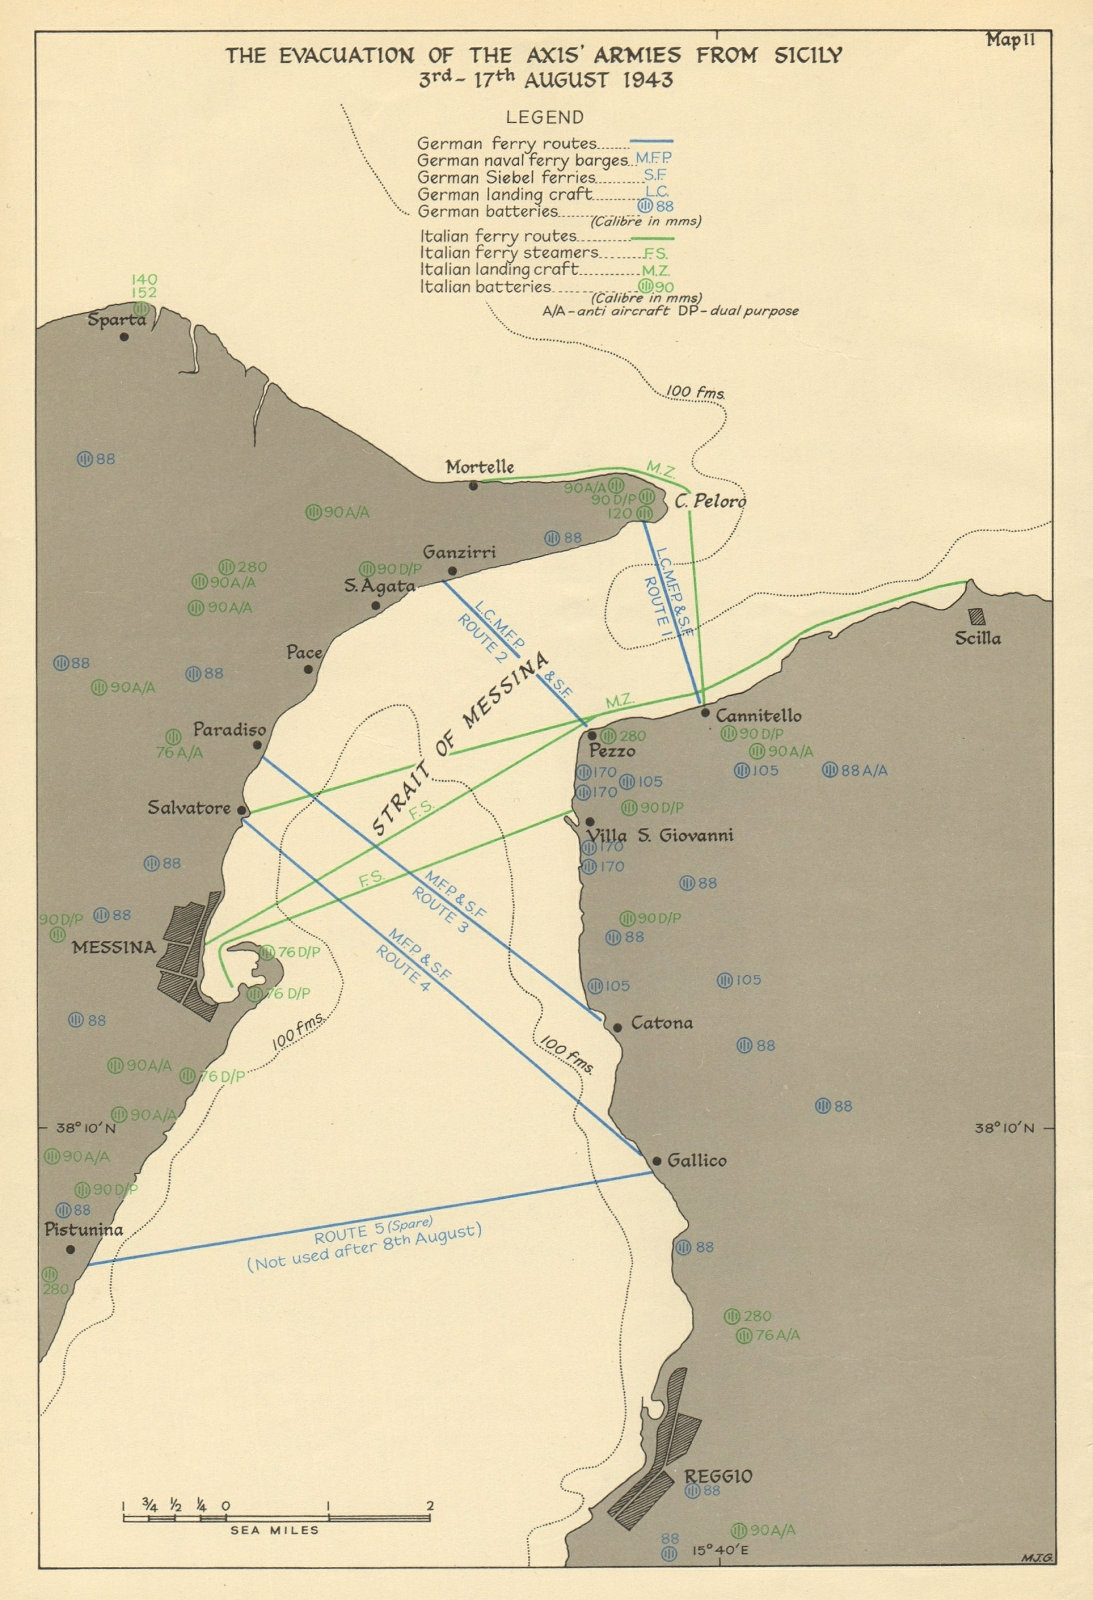 Axis Armies evacuation from Sicily 3-17 August 1943. Strait of Messina 1954 map